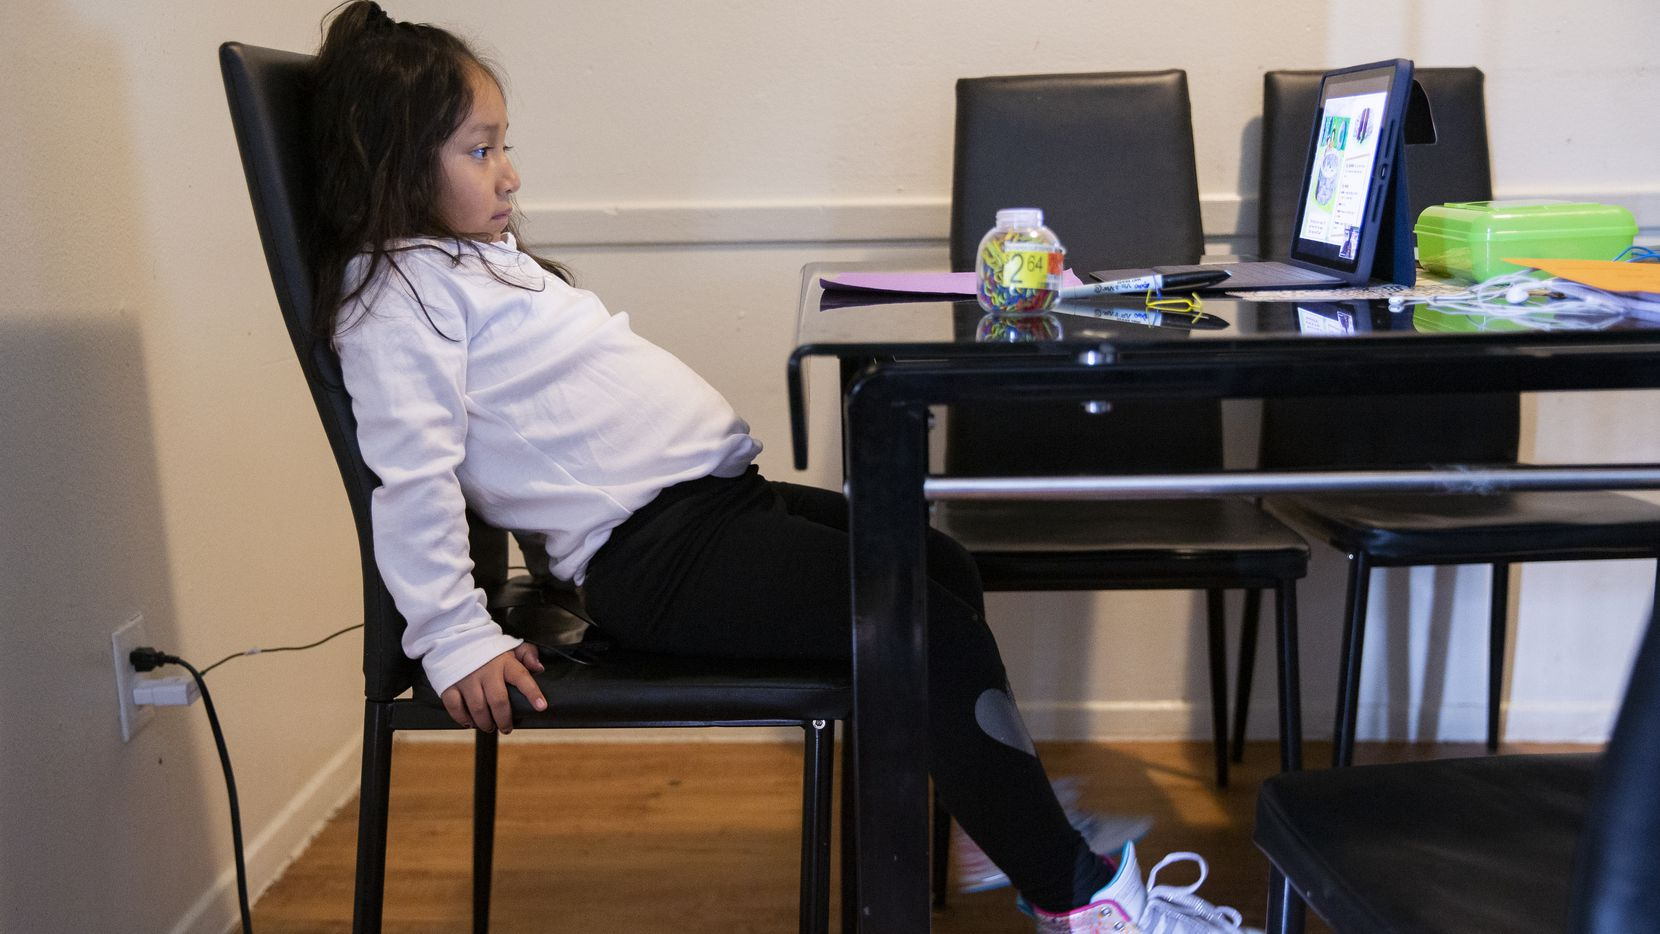 Daysha Cojulum, 5, grew restless while attending virtual school at her kitchen table in northwest Dallas on Sept. 16, 2020. She used her mother's phone to connect to the internet due to the DISD hotspots not working properly or running out of the allotted data.